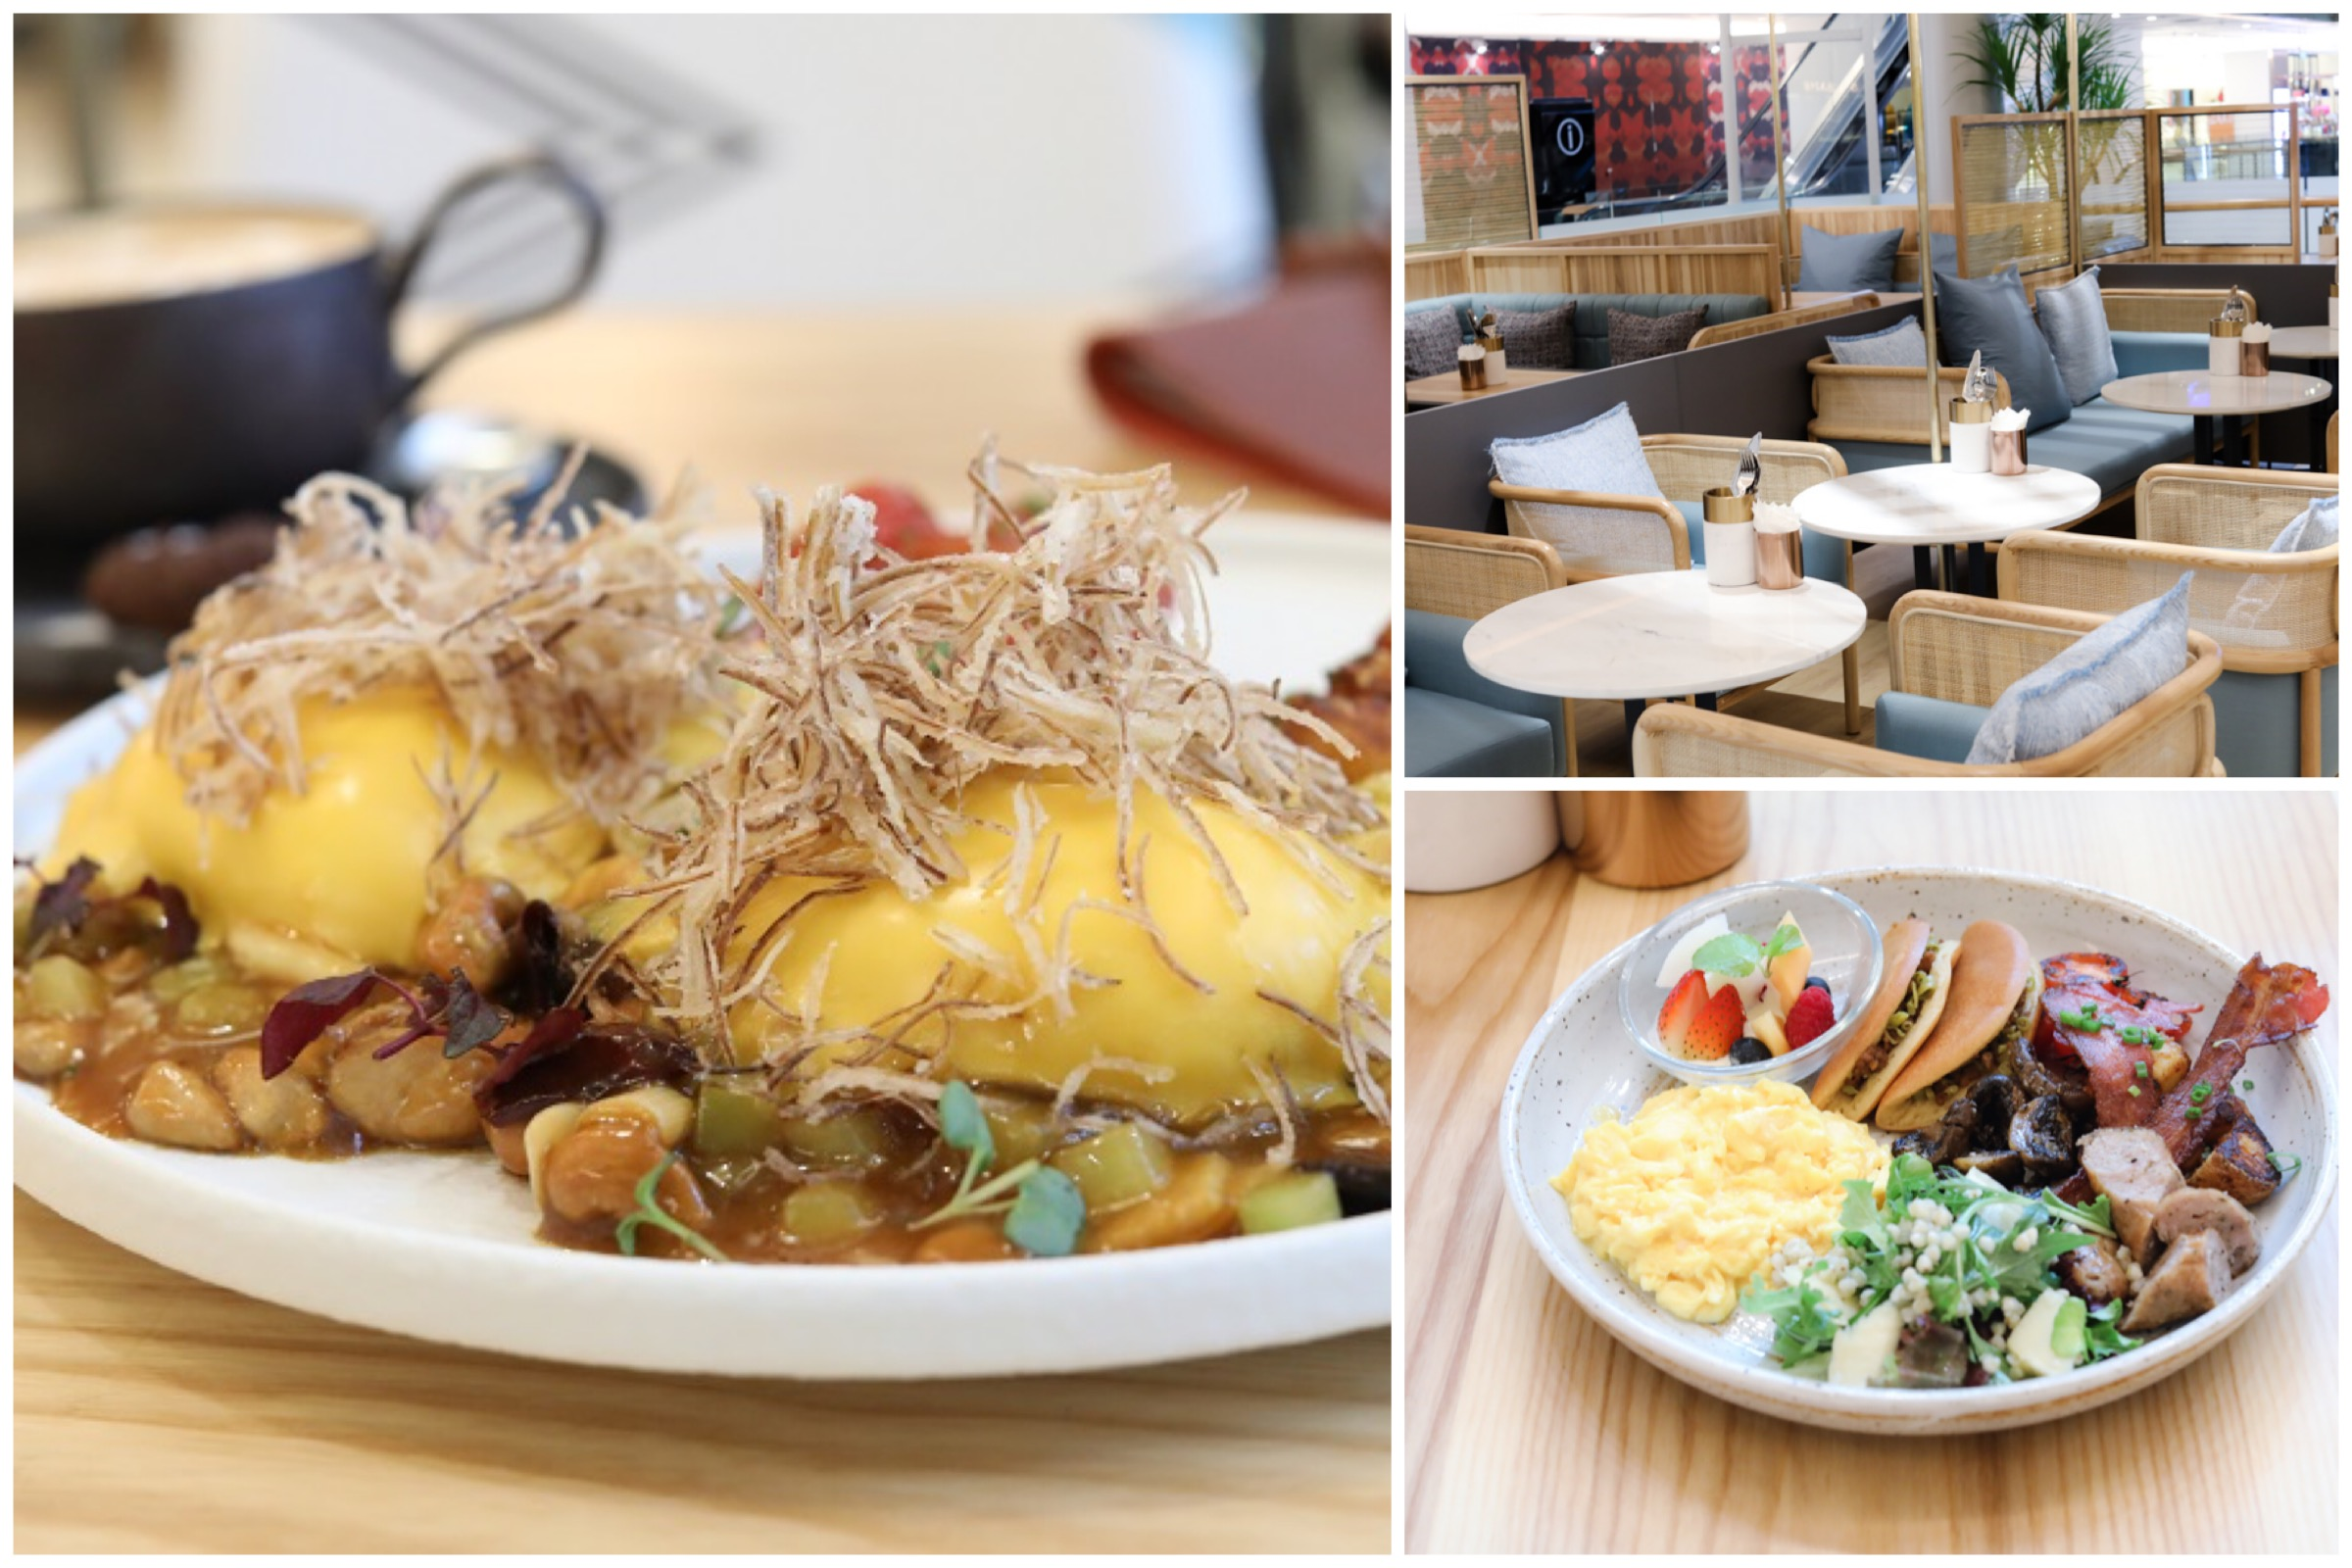 Halcyon & Crane – Brunch With Sichuan Influences At Orchard Paragon. Expect Gong Bao Eggs Ben And Spicy Beef Capellini